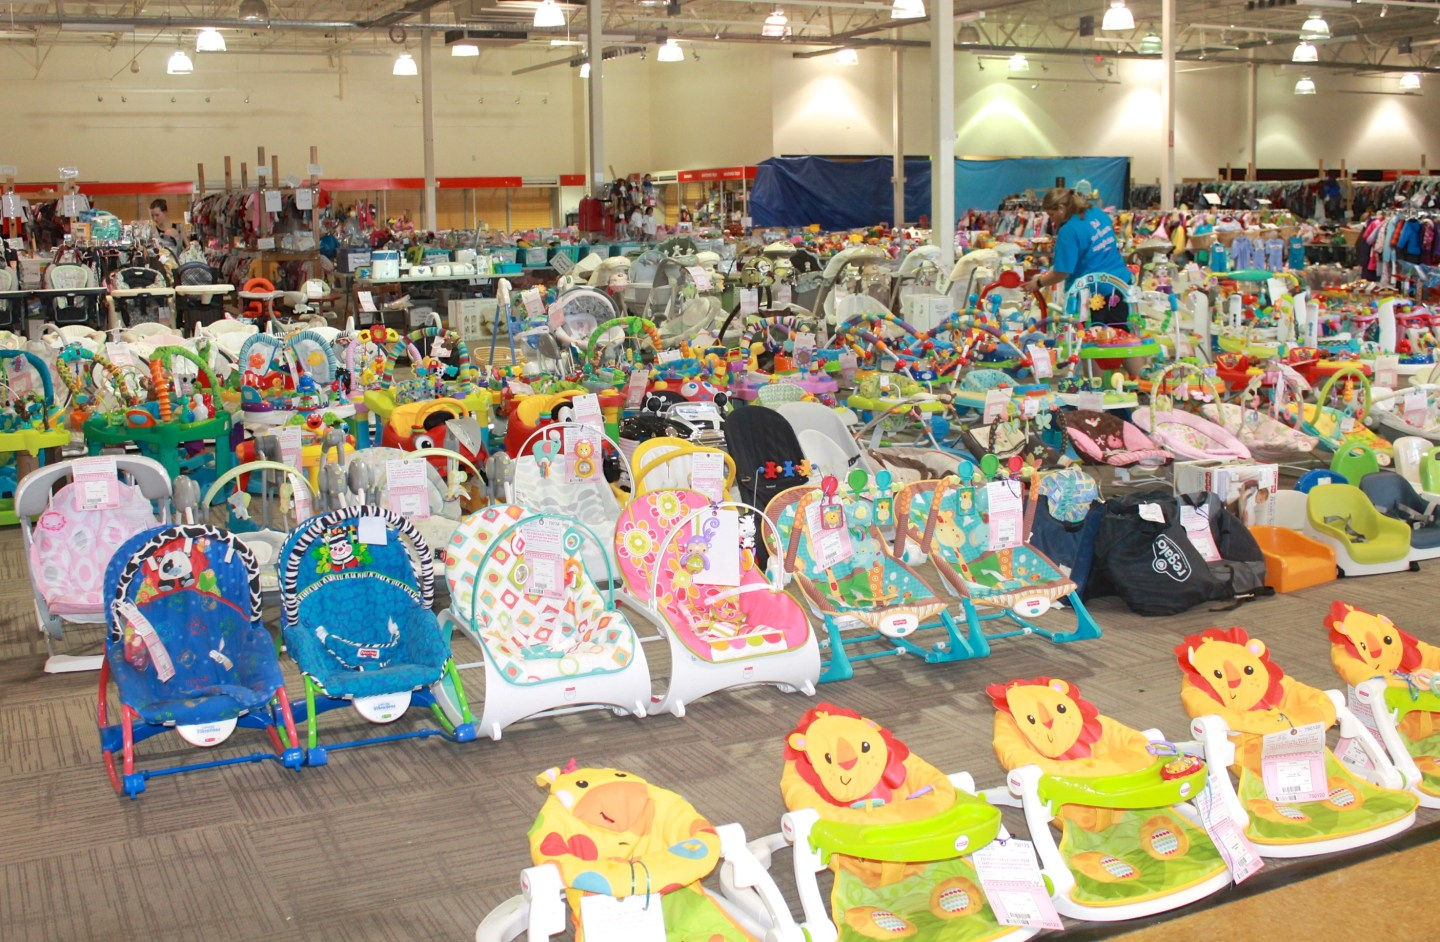 WeeTrade Children's Consignment Event   What To Expect